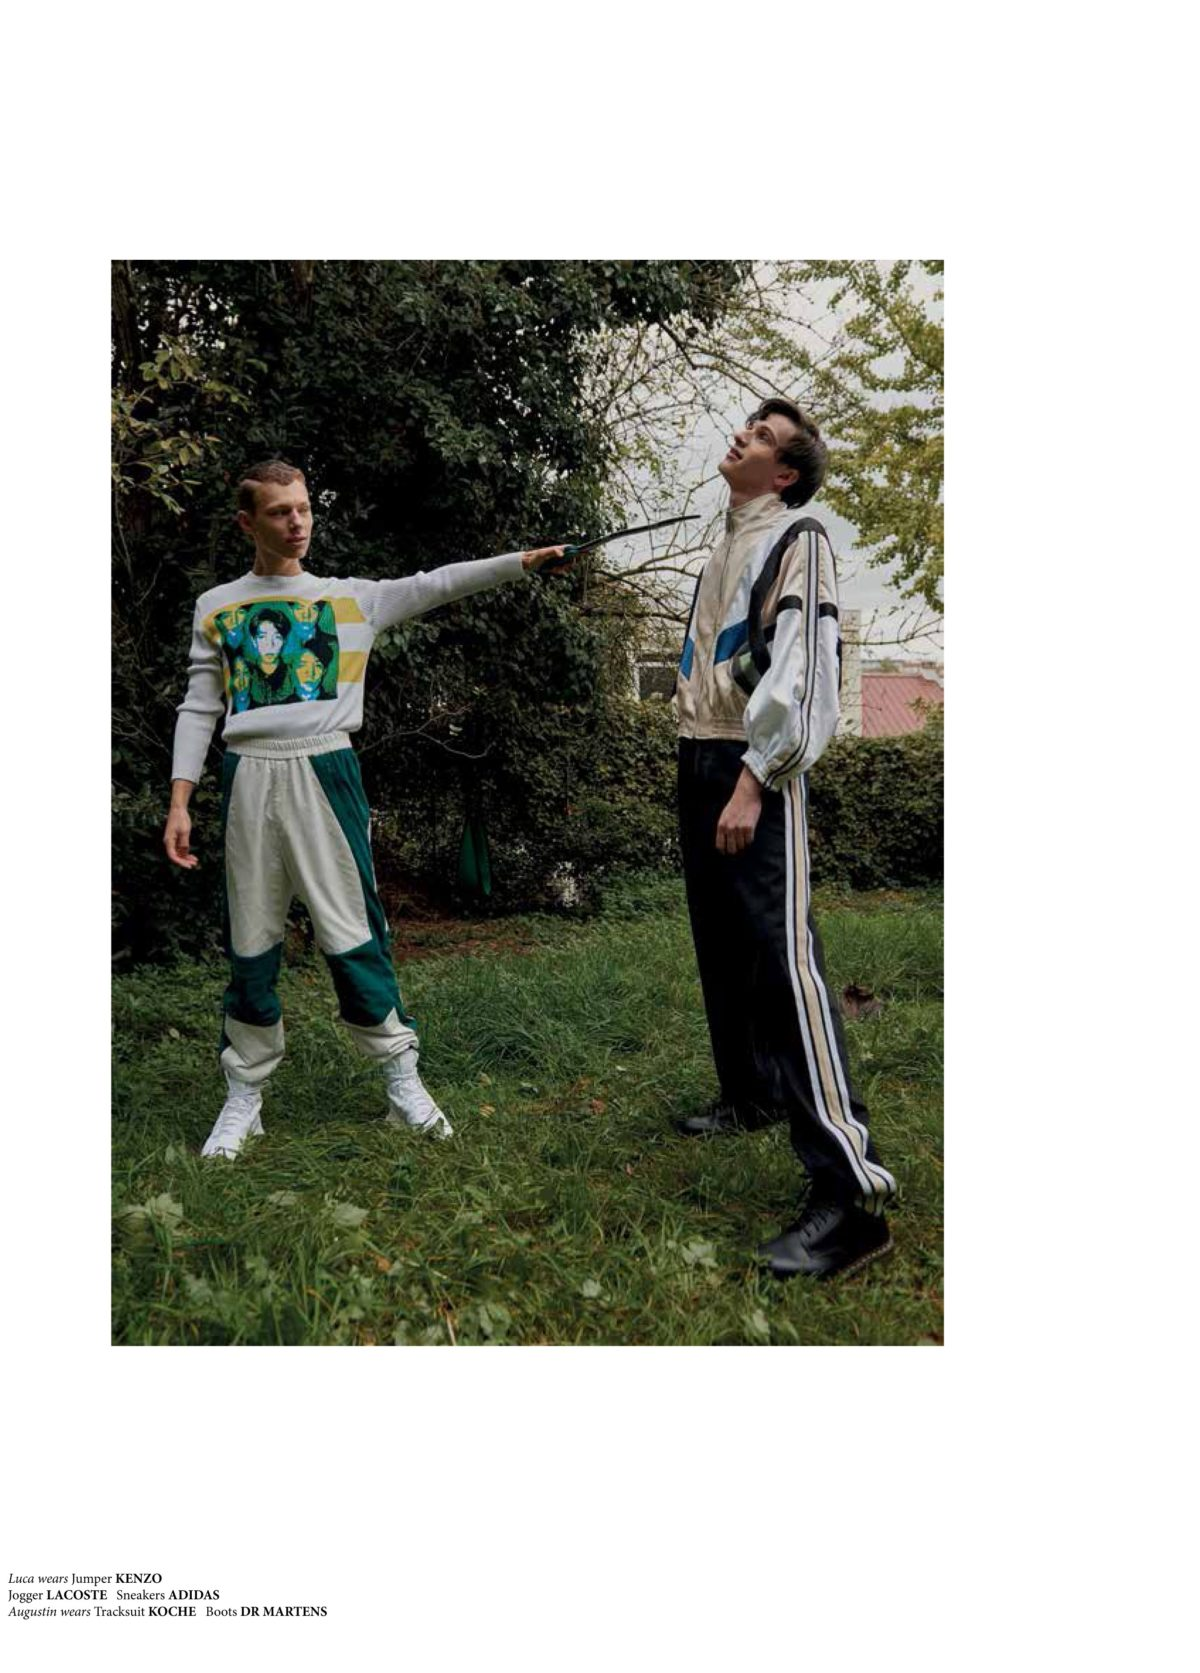 NR Magazine shot by Niklas Bergstrand & Mateja Duljak styled by Arthur Mayadoux with Kenzo, Lacoste, Adidas, Koche & Dr Martens